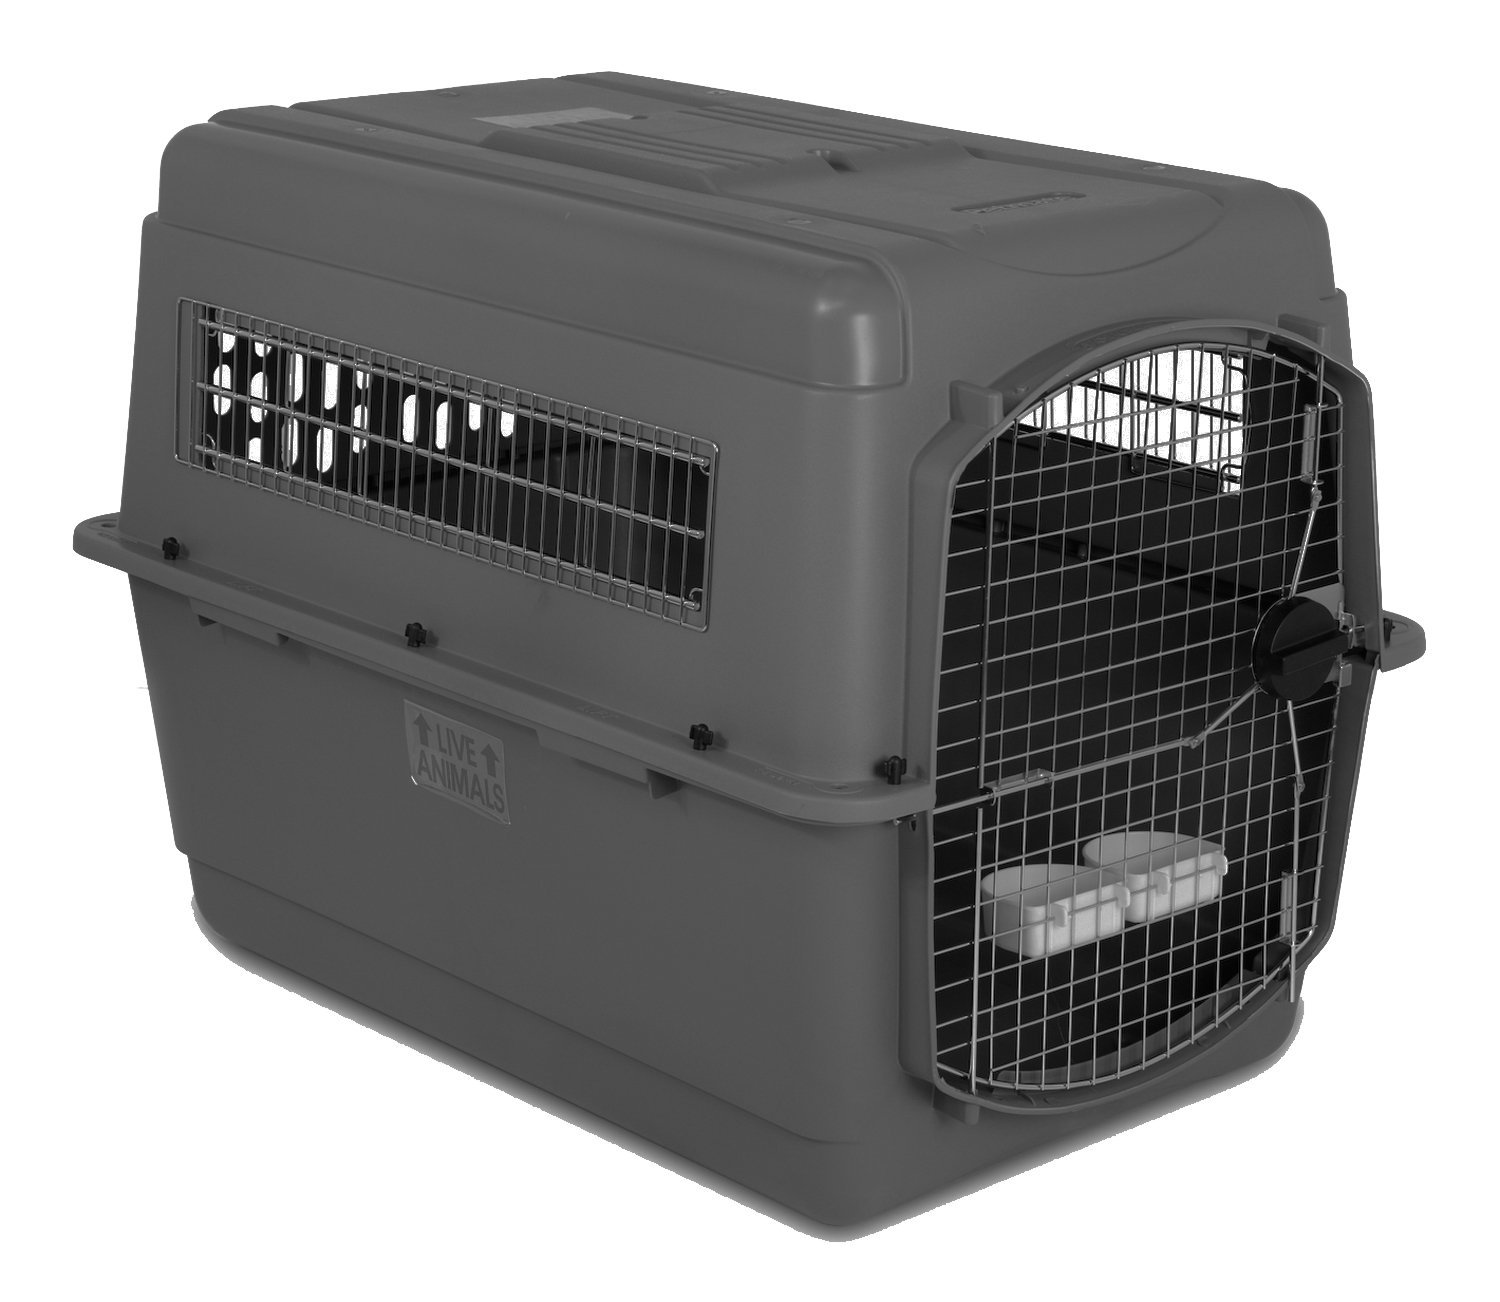 Best Puppy Crates - Petmate Sky Kennels